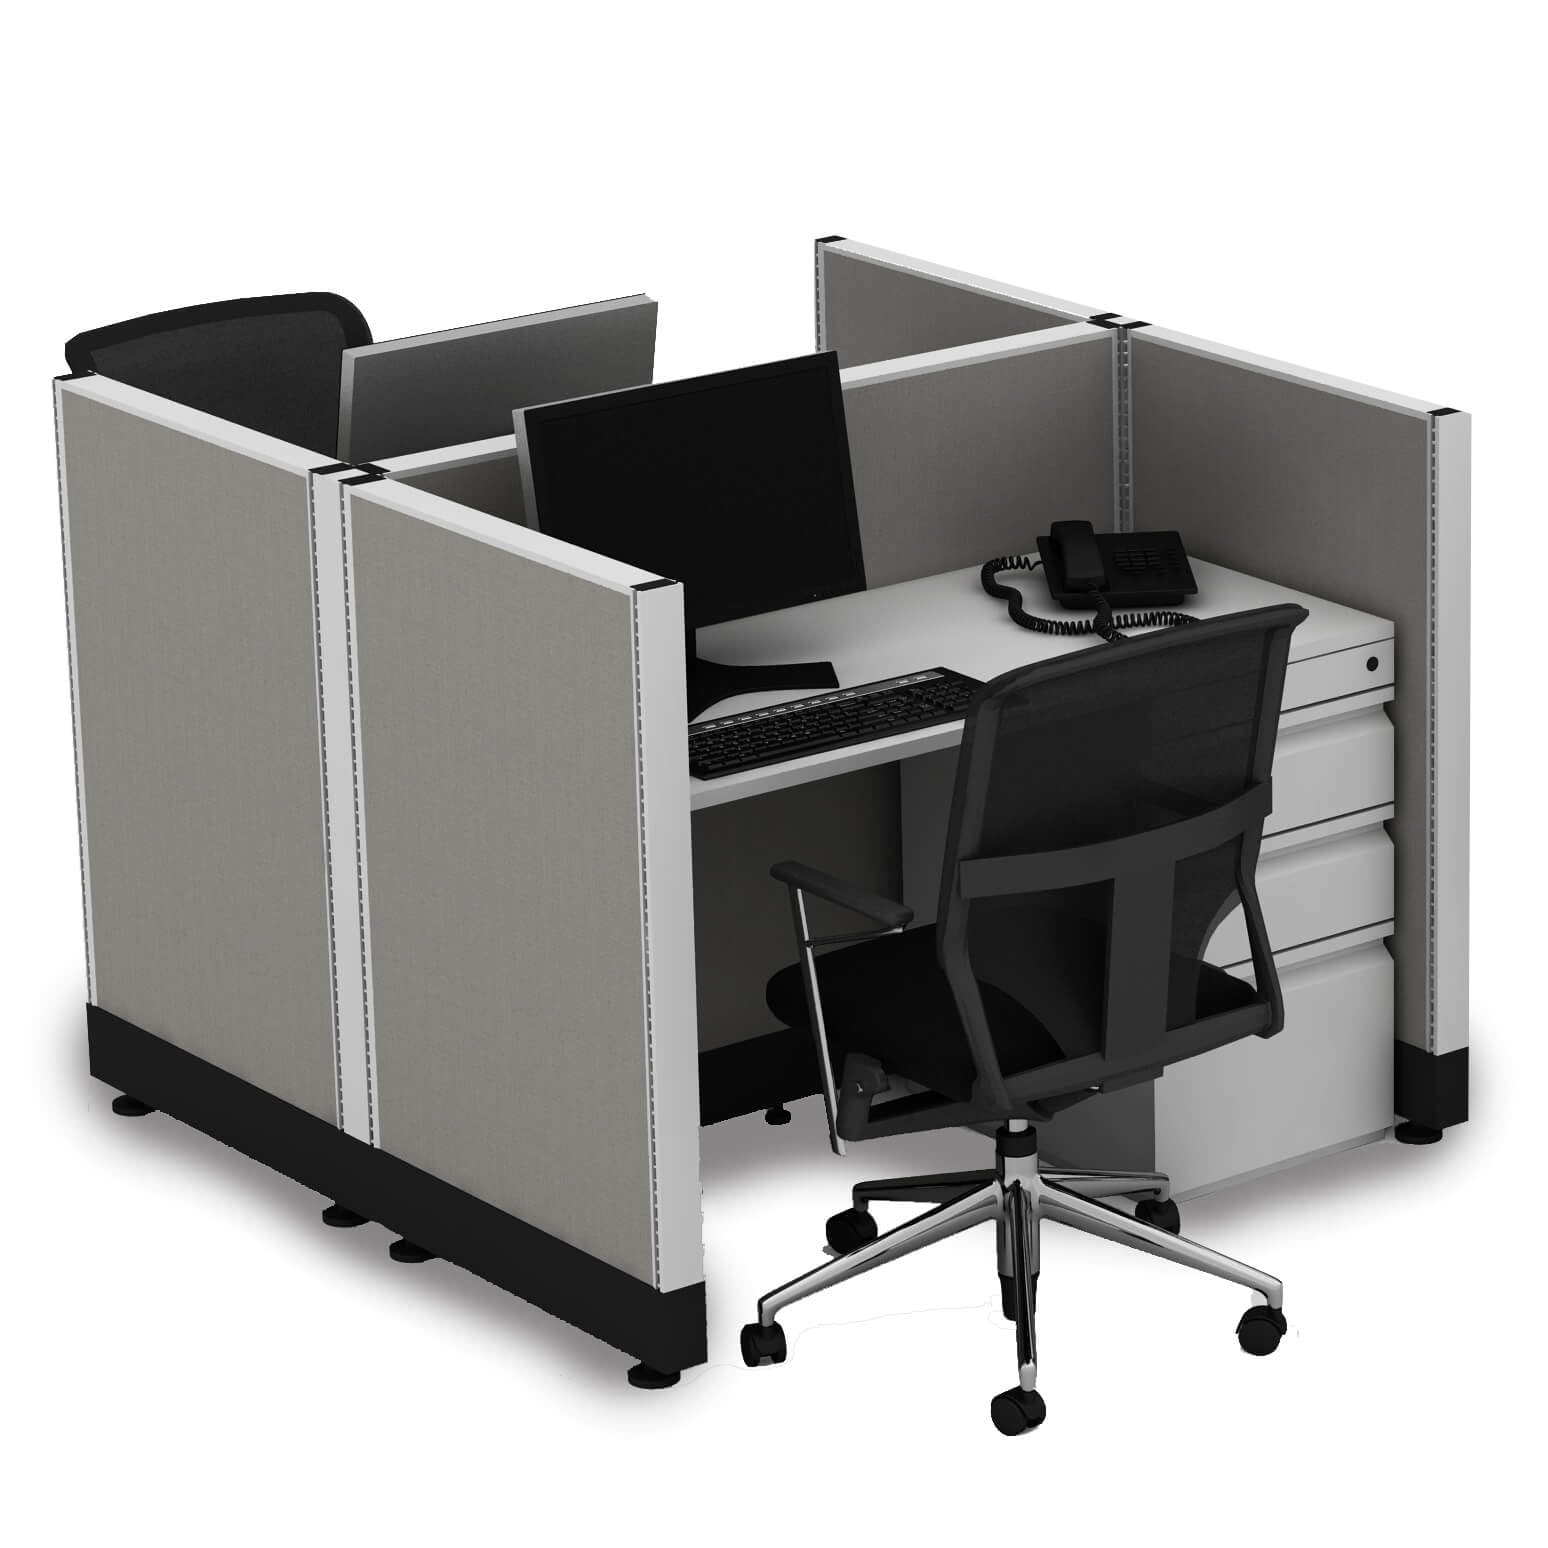 Small Cubicles 39H 2pack Cluster Powered (2x4 - Espresso Desk Silver Paint - Assembly Required)